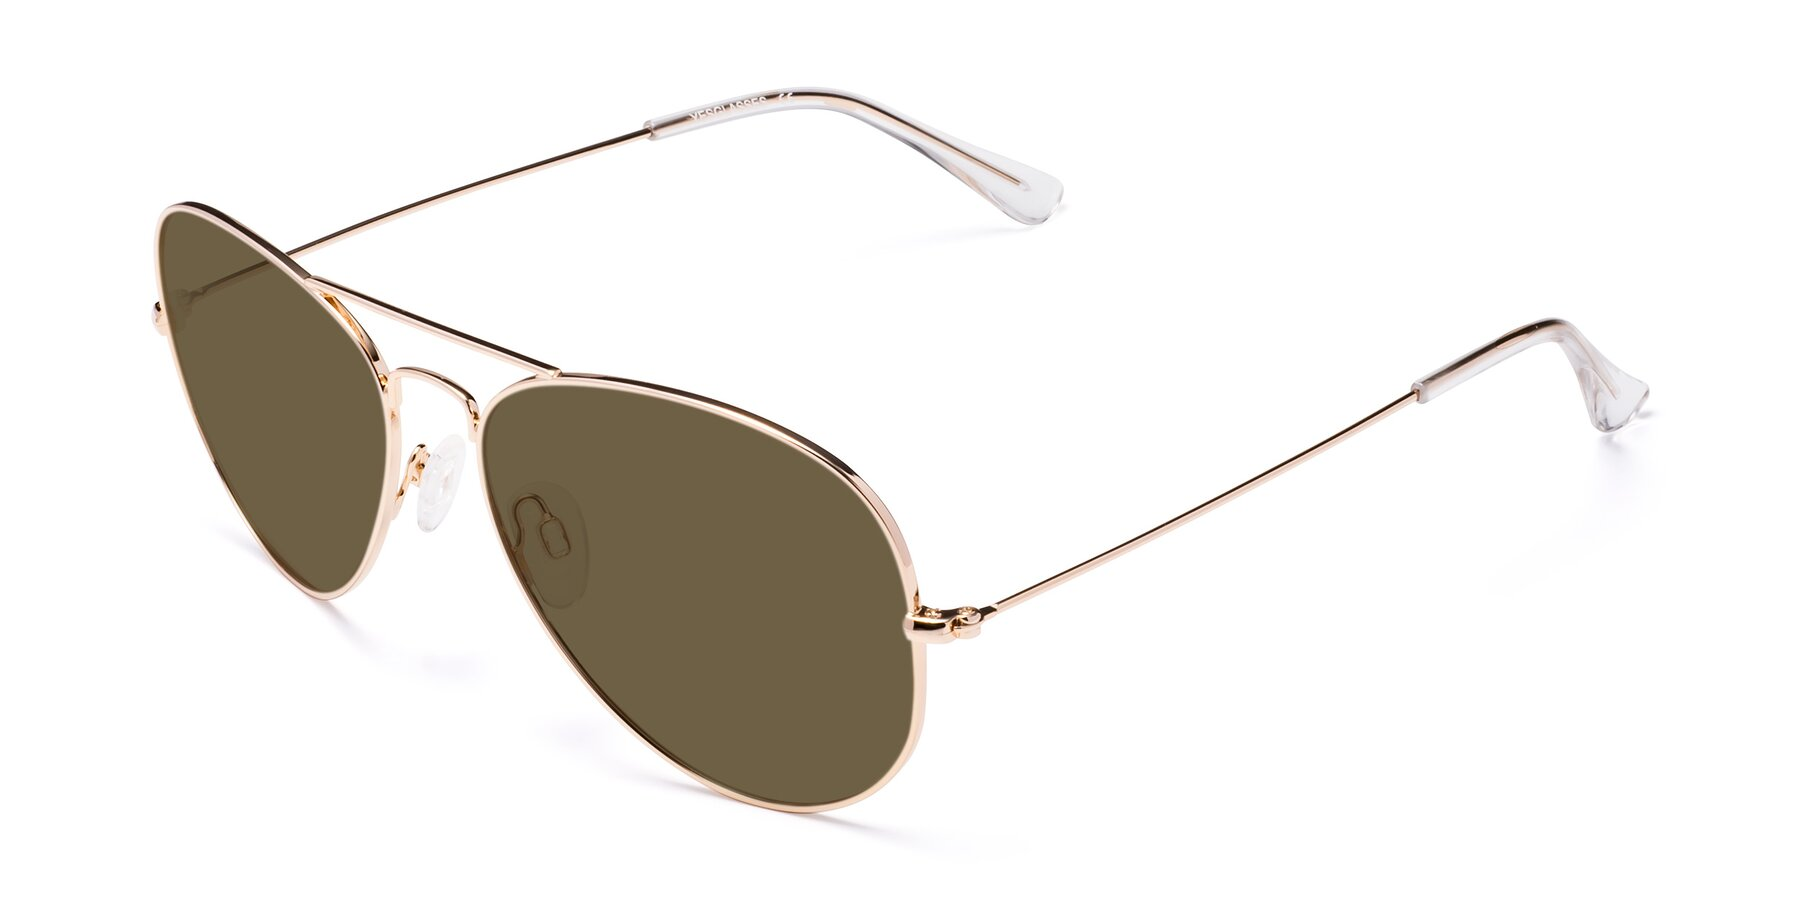 Angle of SSR035 in Shiny Gold with Brown Polarized Lenses